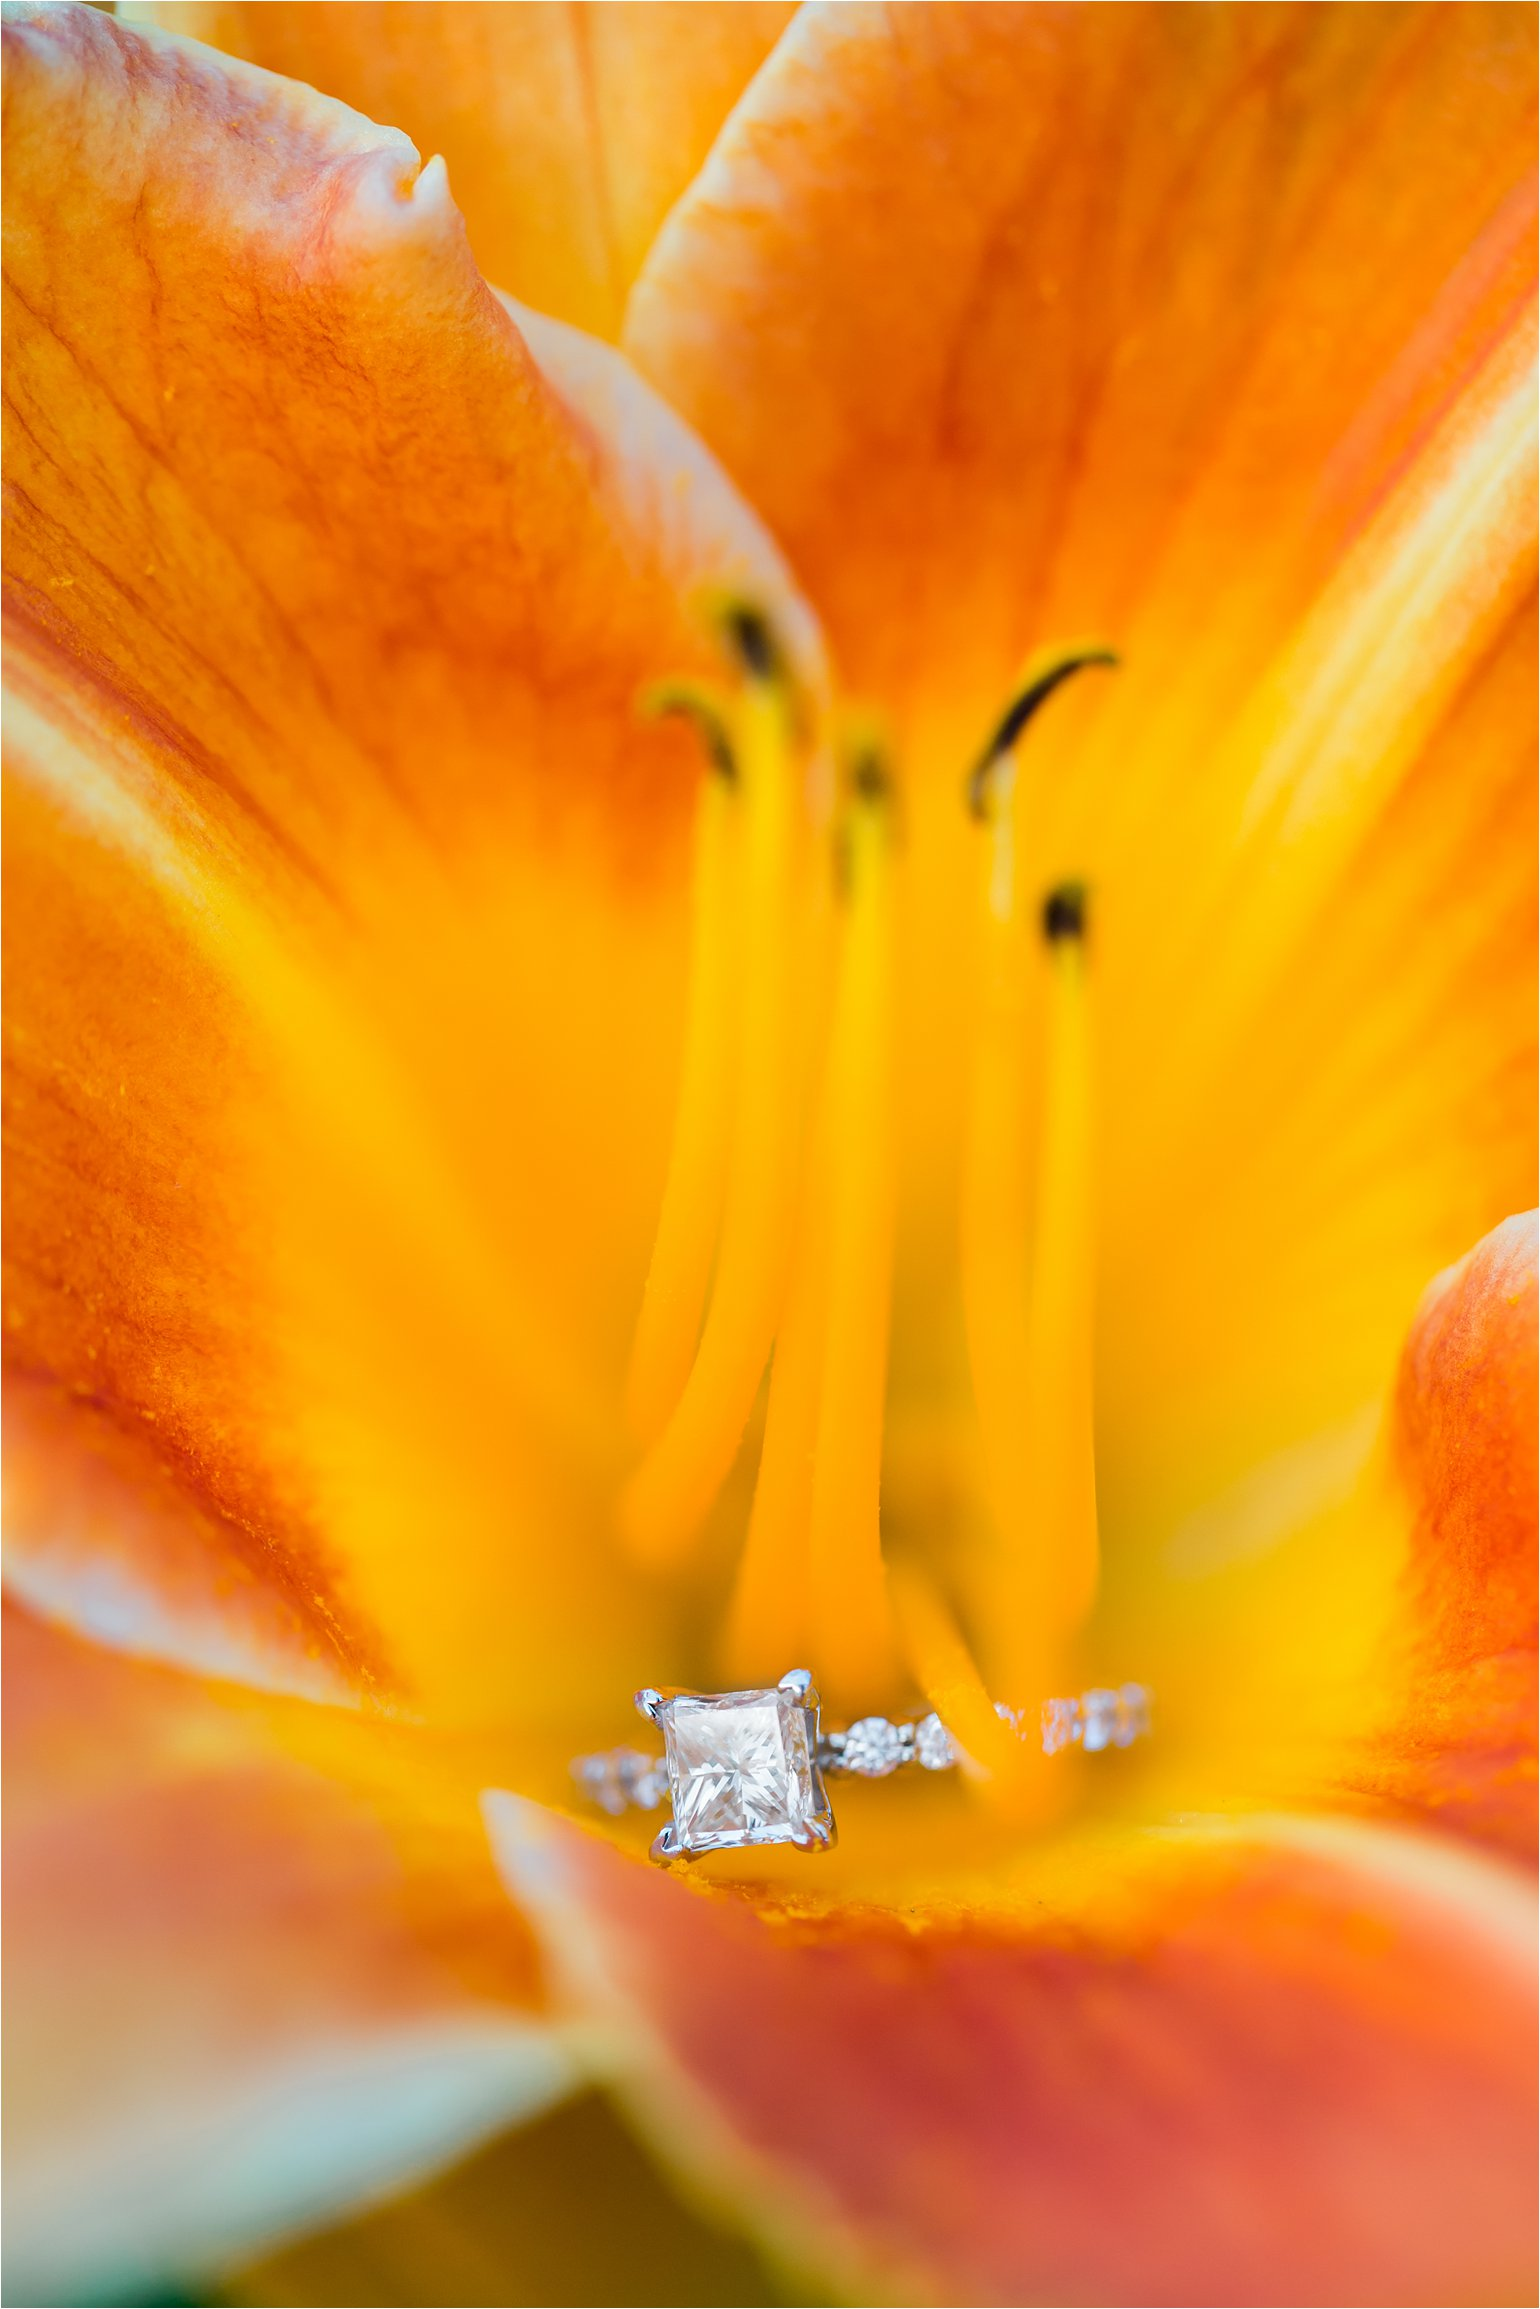 Engagement Ring in Daylily © 2015 Maundy Mitchell